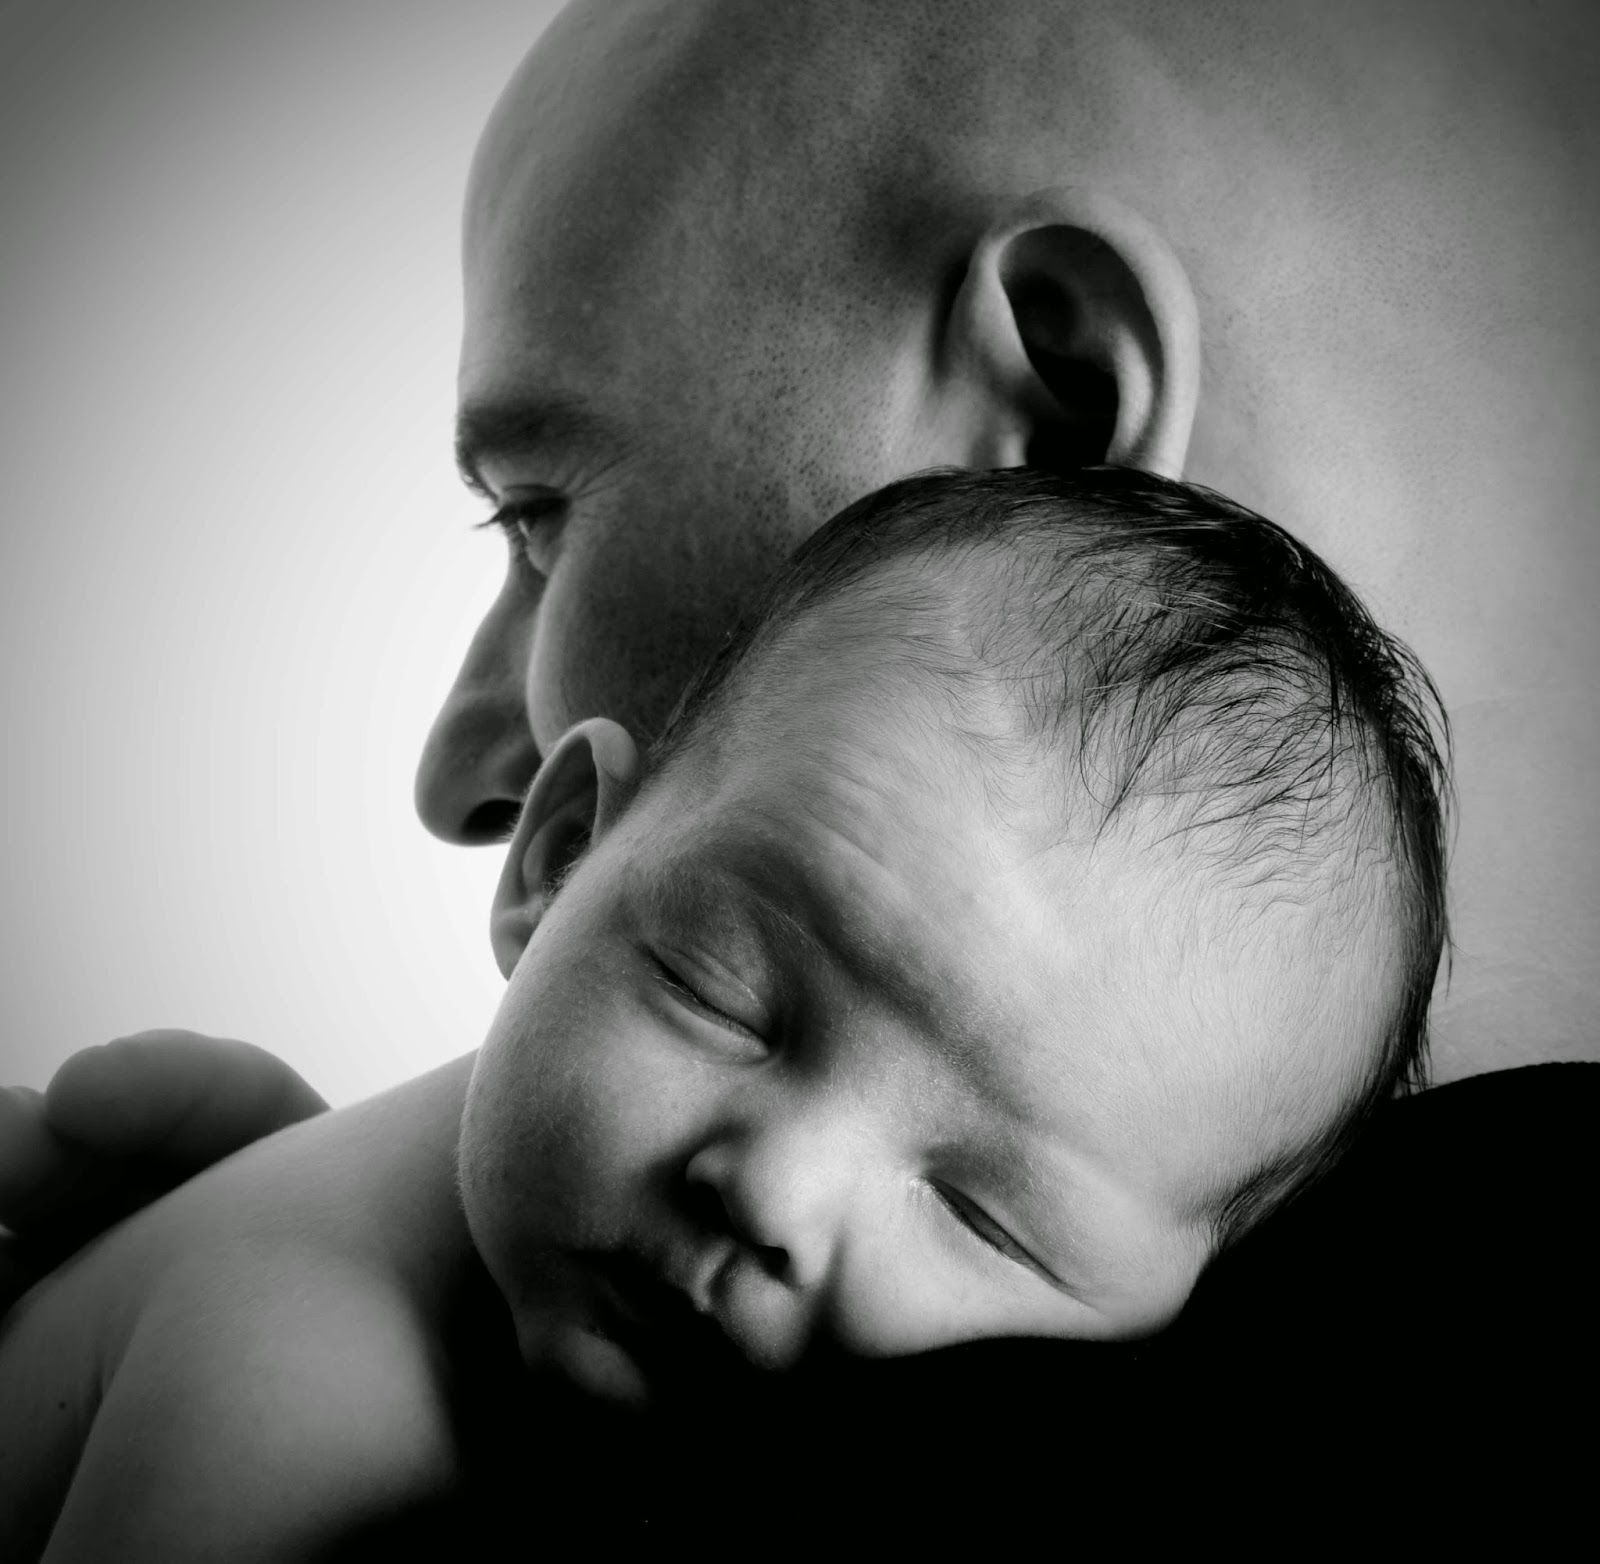 Father's Day Images, part 3